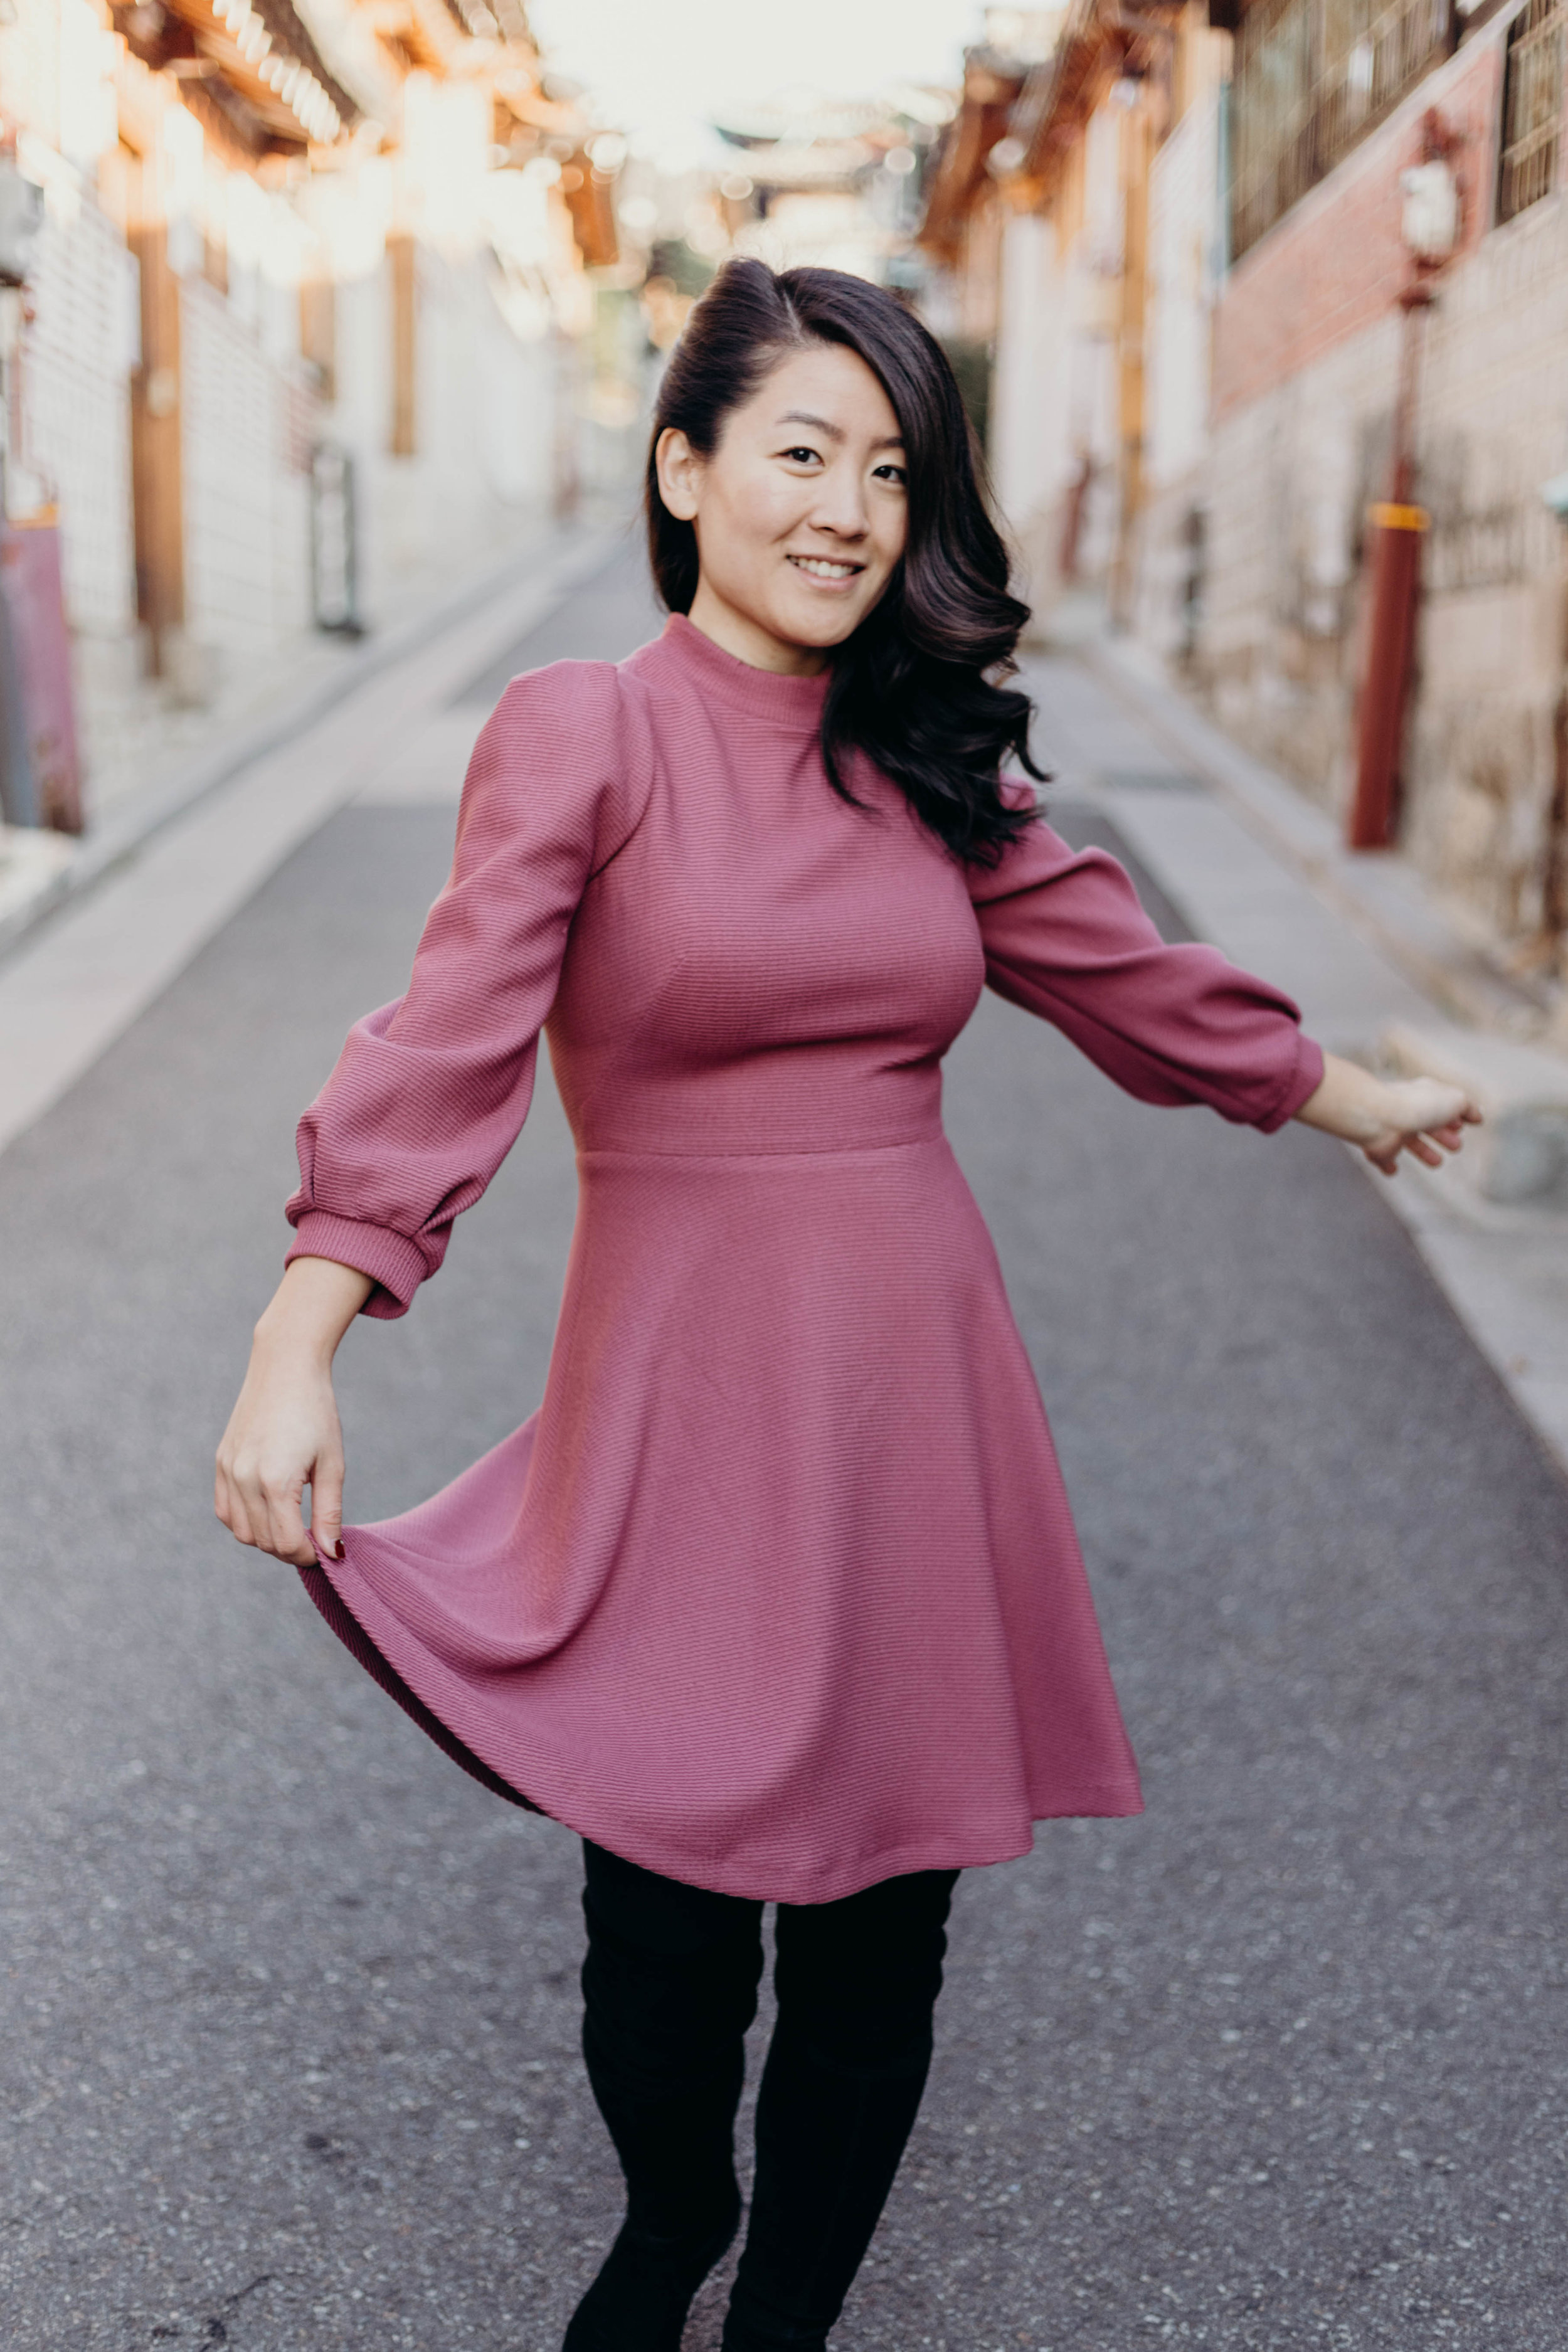 The Dress I Wore Most Last Semester and an Exciting Sale | On the Street Where We Live ( aretherelilactrees.com )  Gal Meets Glam Collection, Maggie dress, Bukchon Hanok Village, Seoul, South Korea